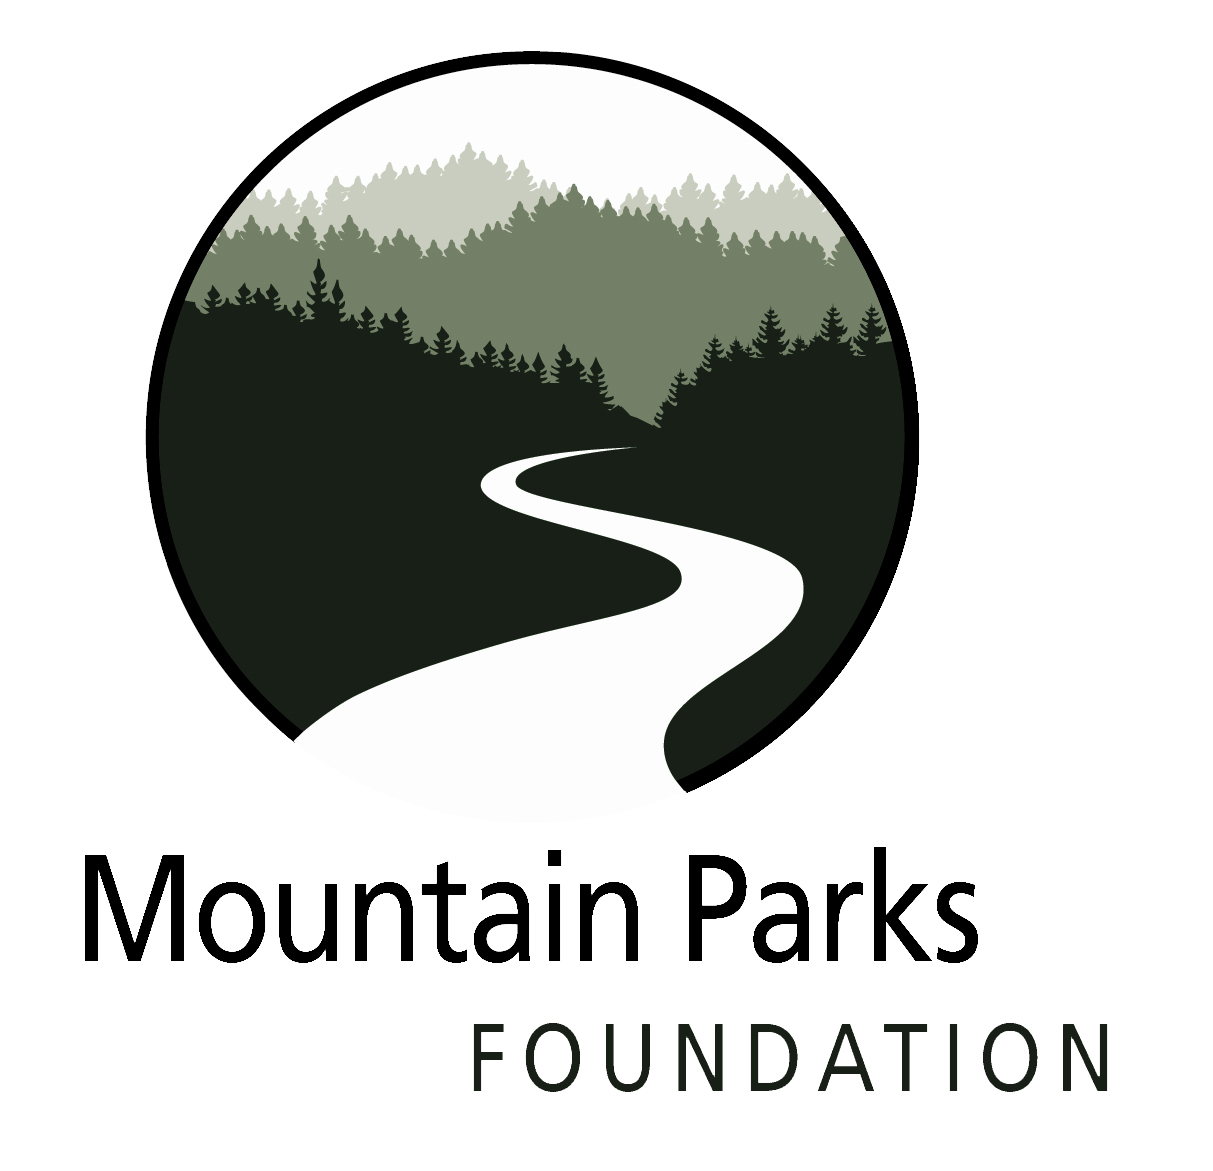 Mountain Parks Foundation